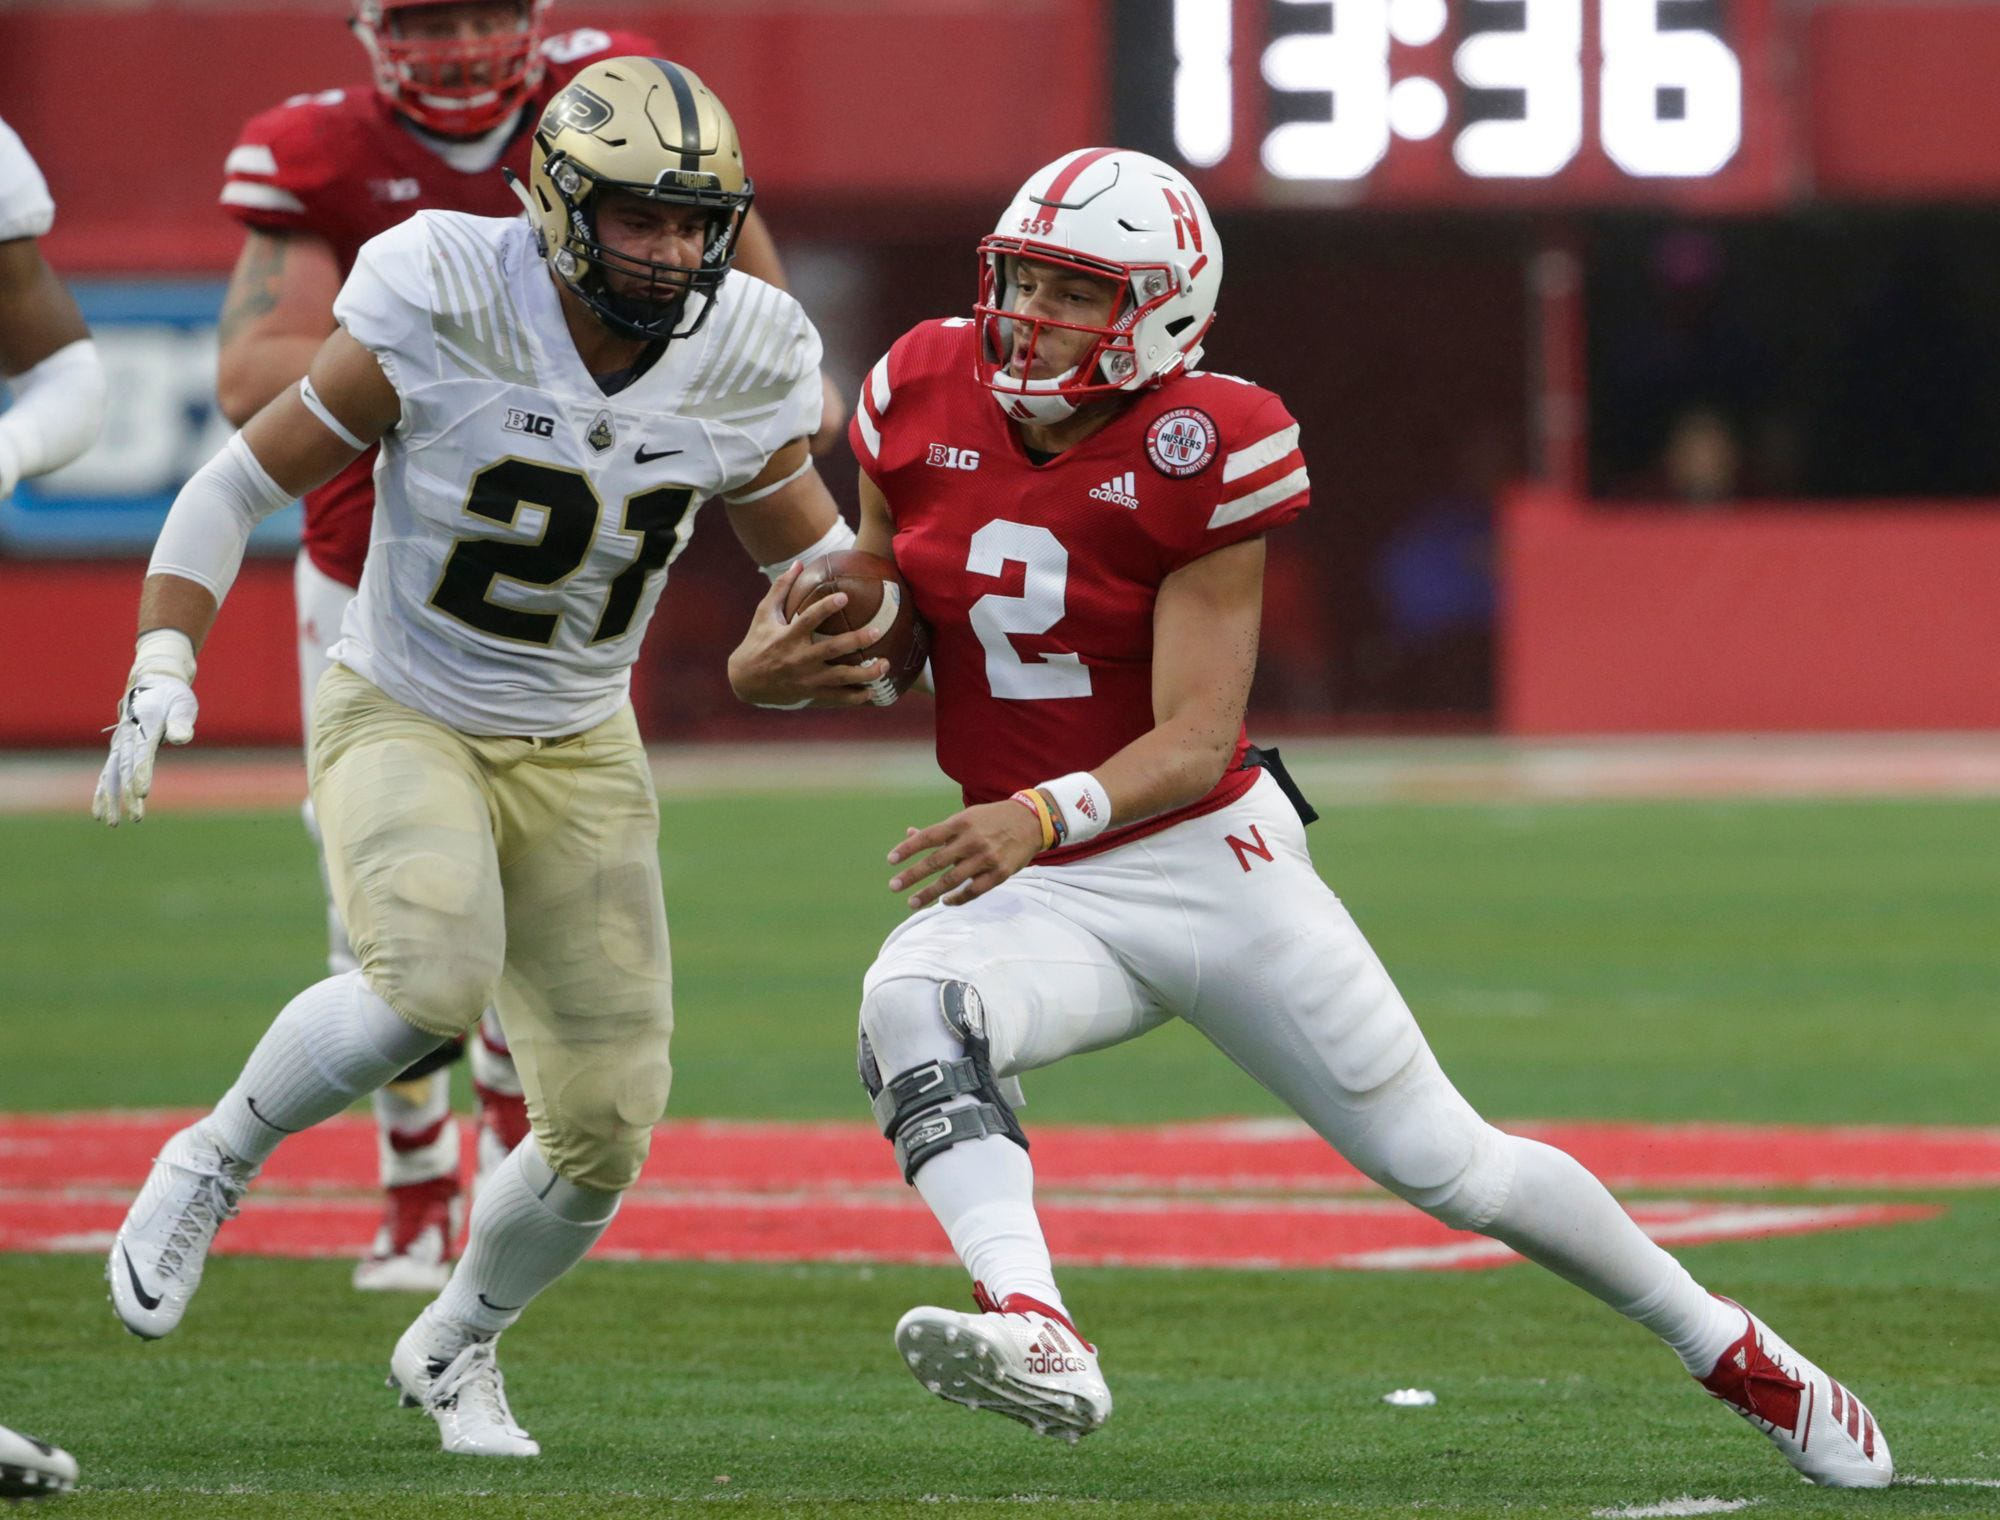 Nebraska quarterback Adrian Martinez (2) carries the ball against Purdue linebacker Markus Bailey (21) during the second half of an NCAA college football game in Lincoln, Neb., Saturday, Sept. 29, 2018. Purdue won 42-28.